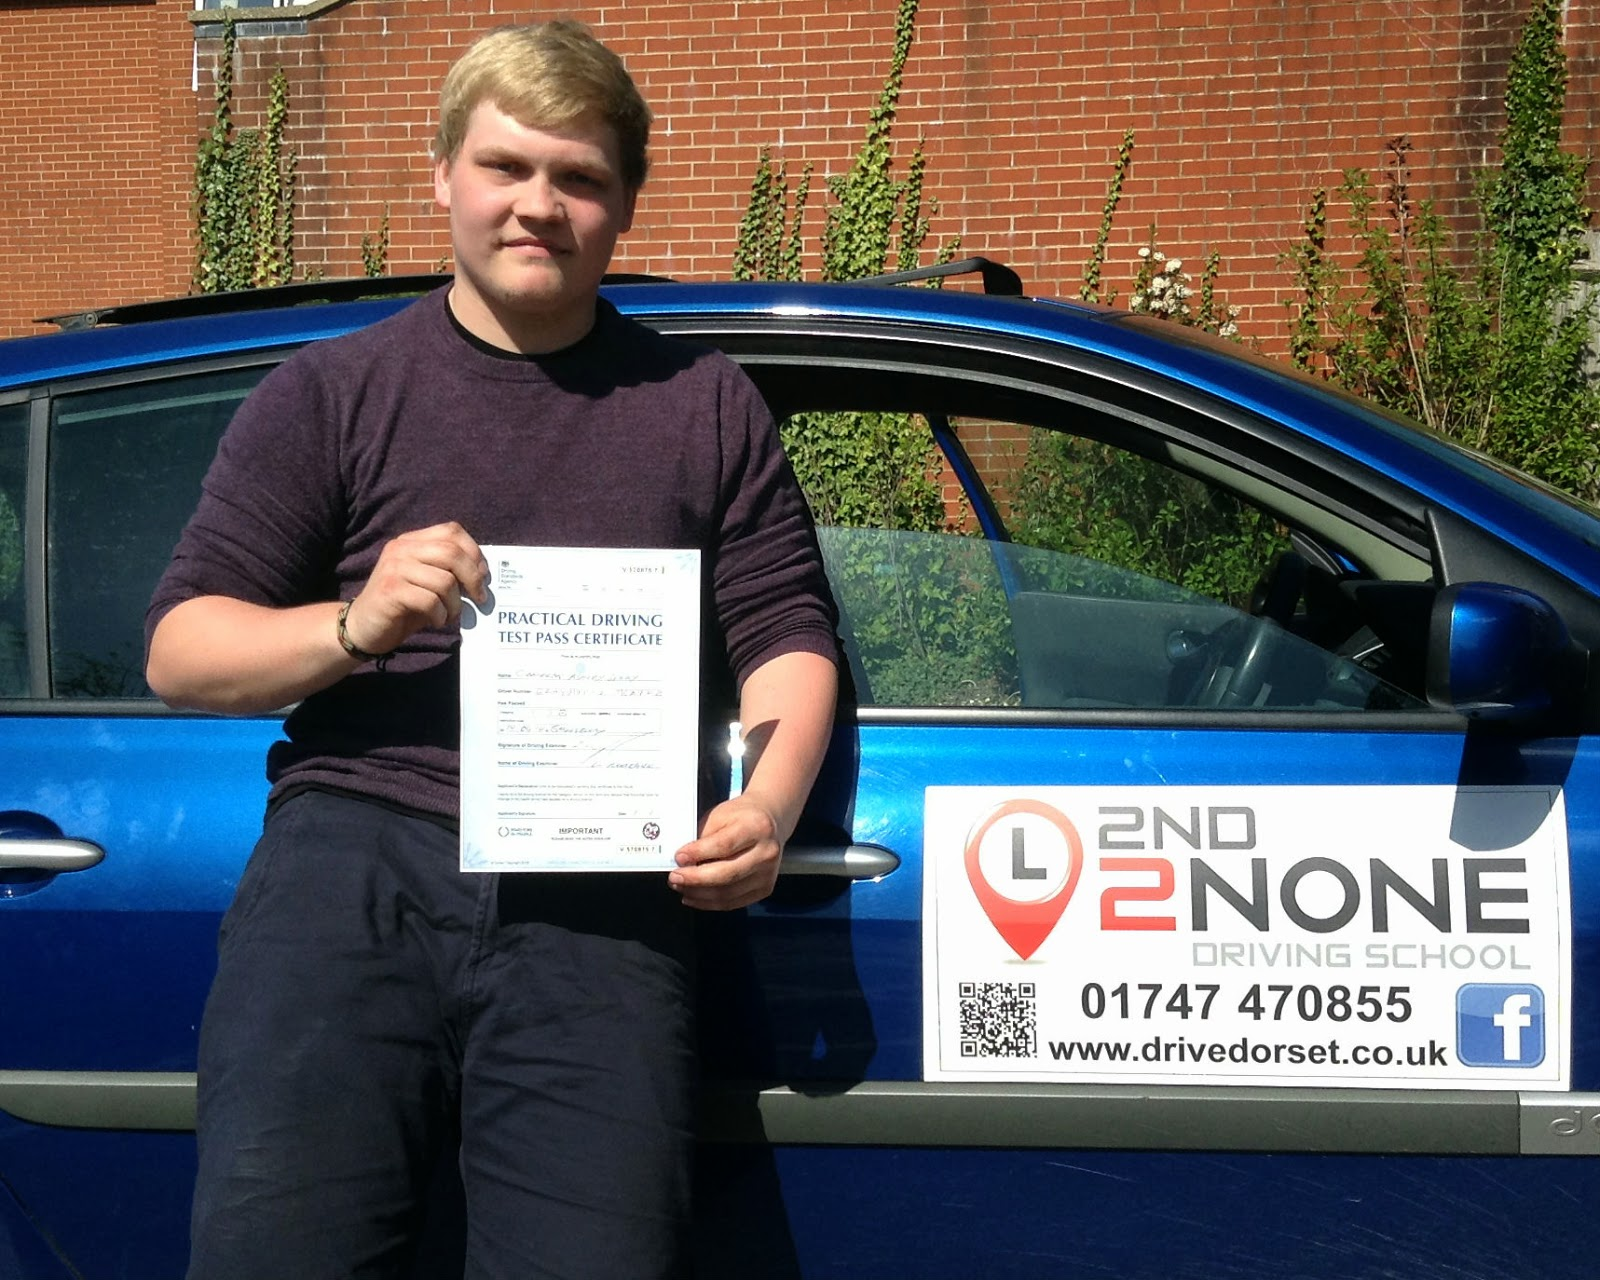 Well done Cameron Grey on passing your driving test 1st time